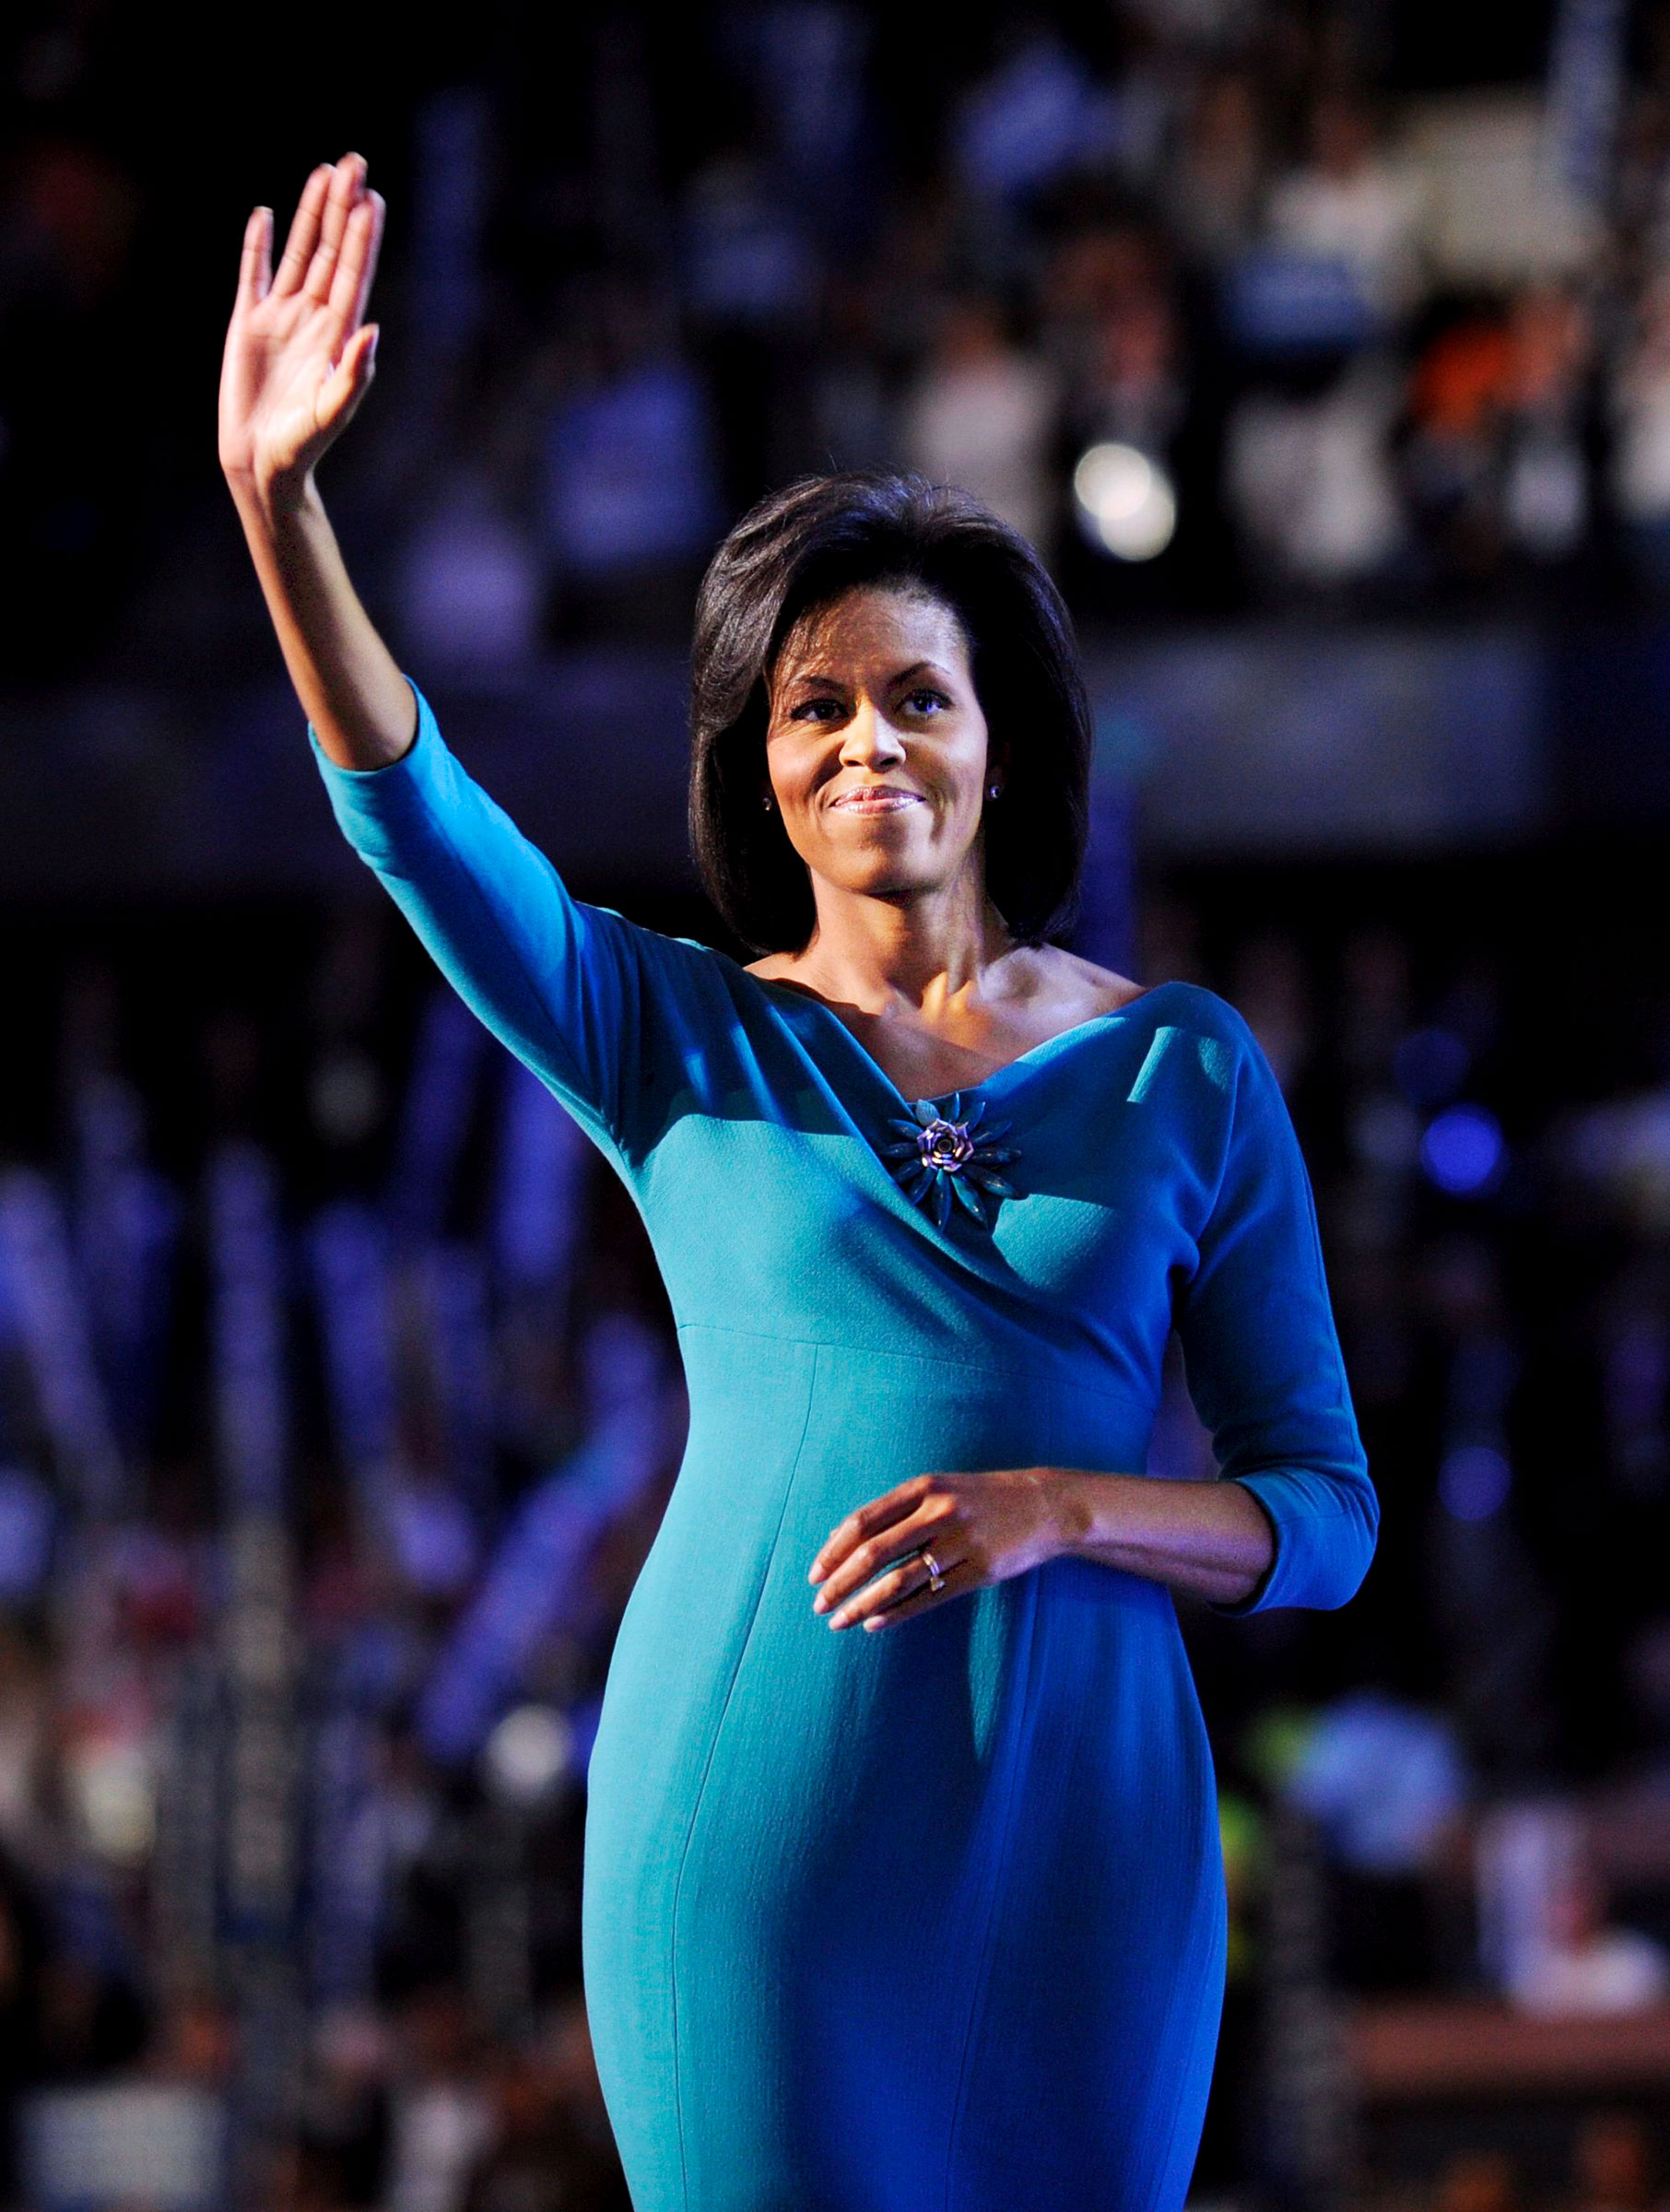 Michelle Obama waves after addressing the 2008 Democratic National Convention in Denver, August 25, 2008.